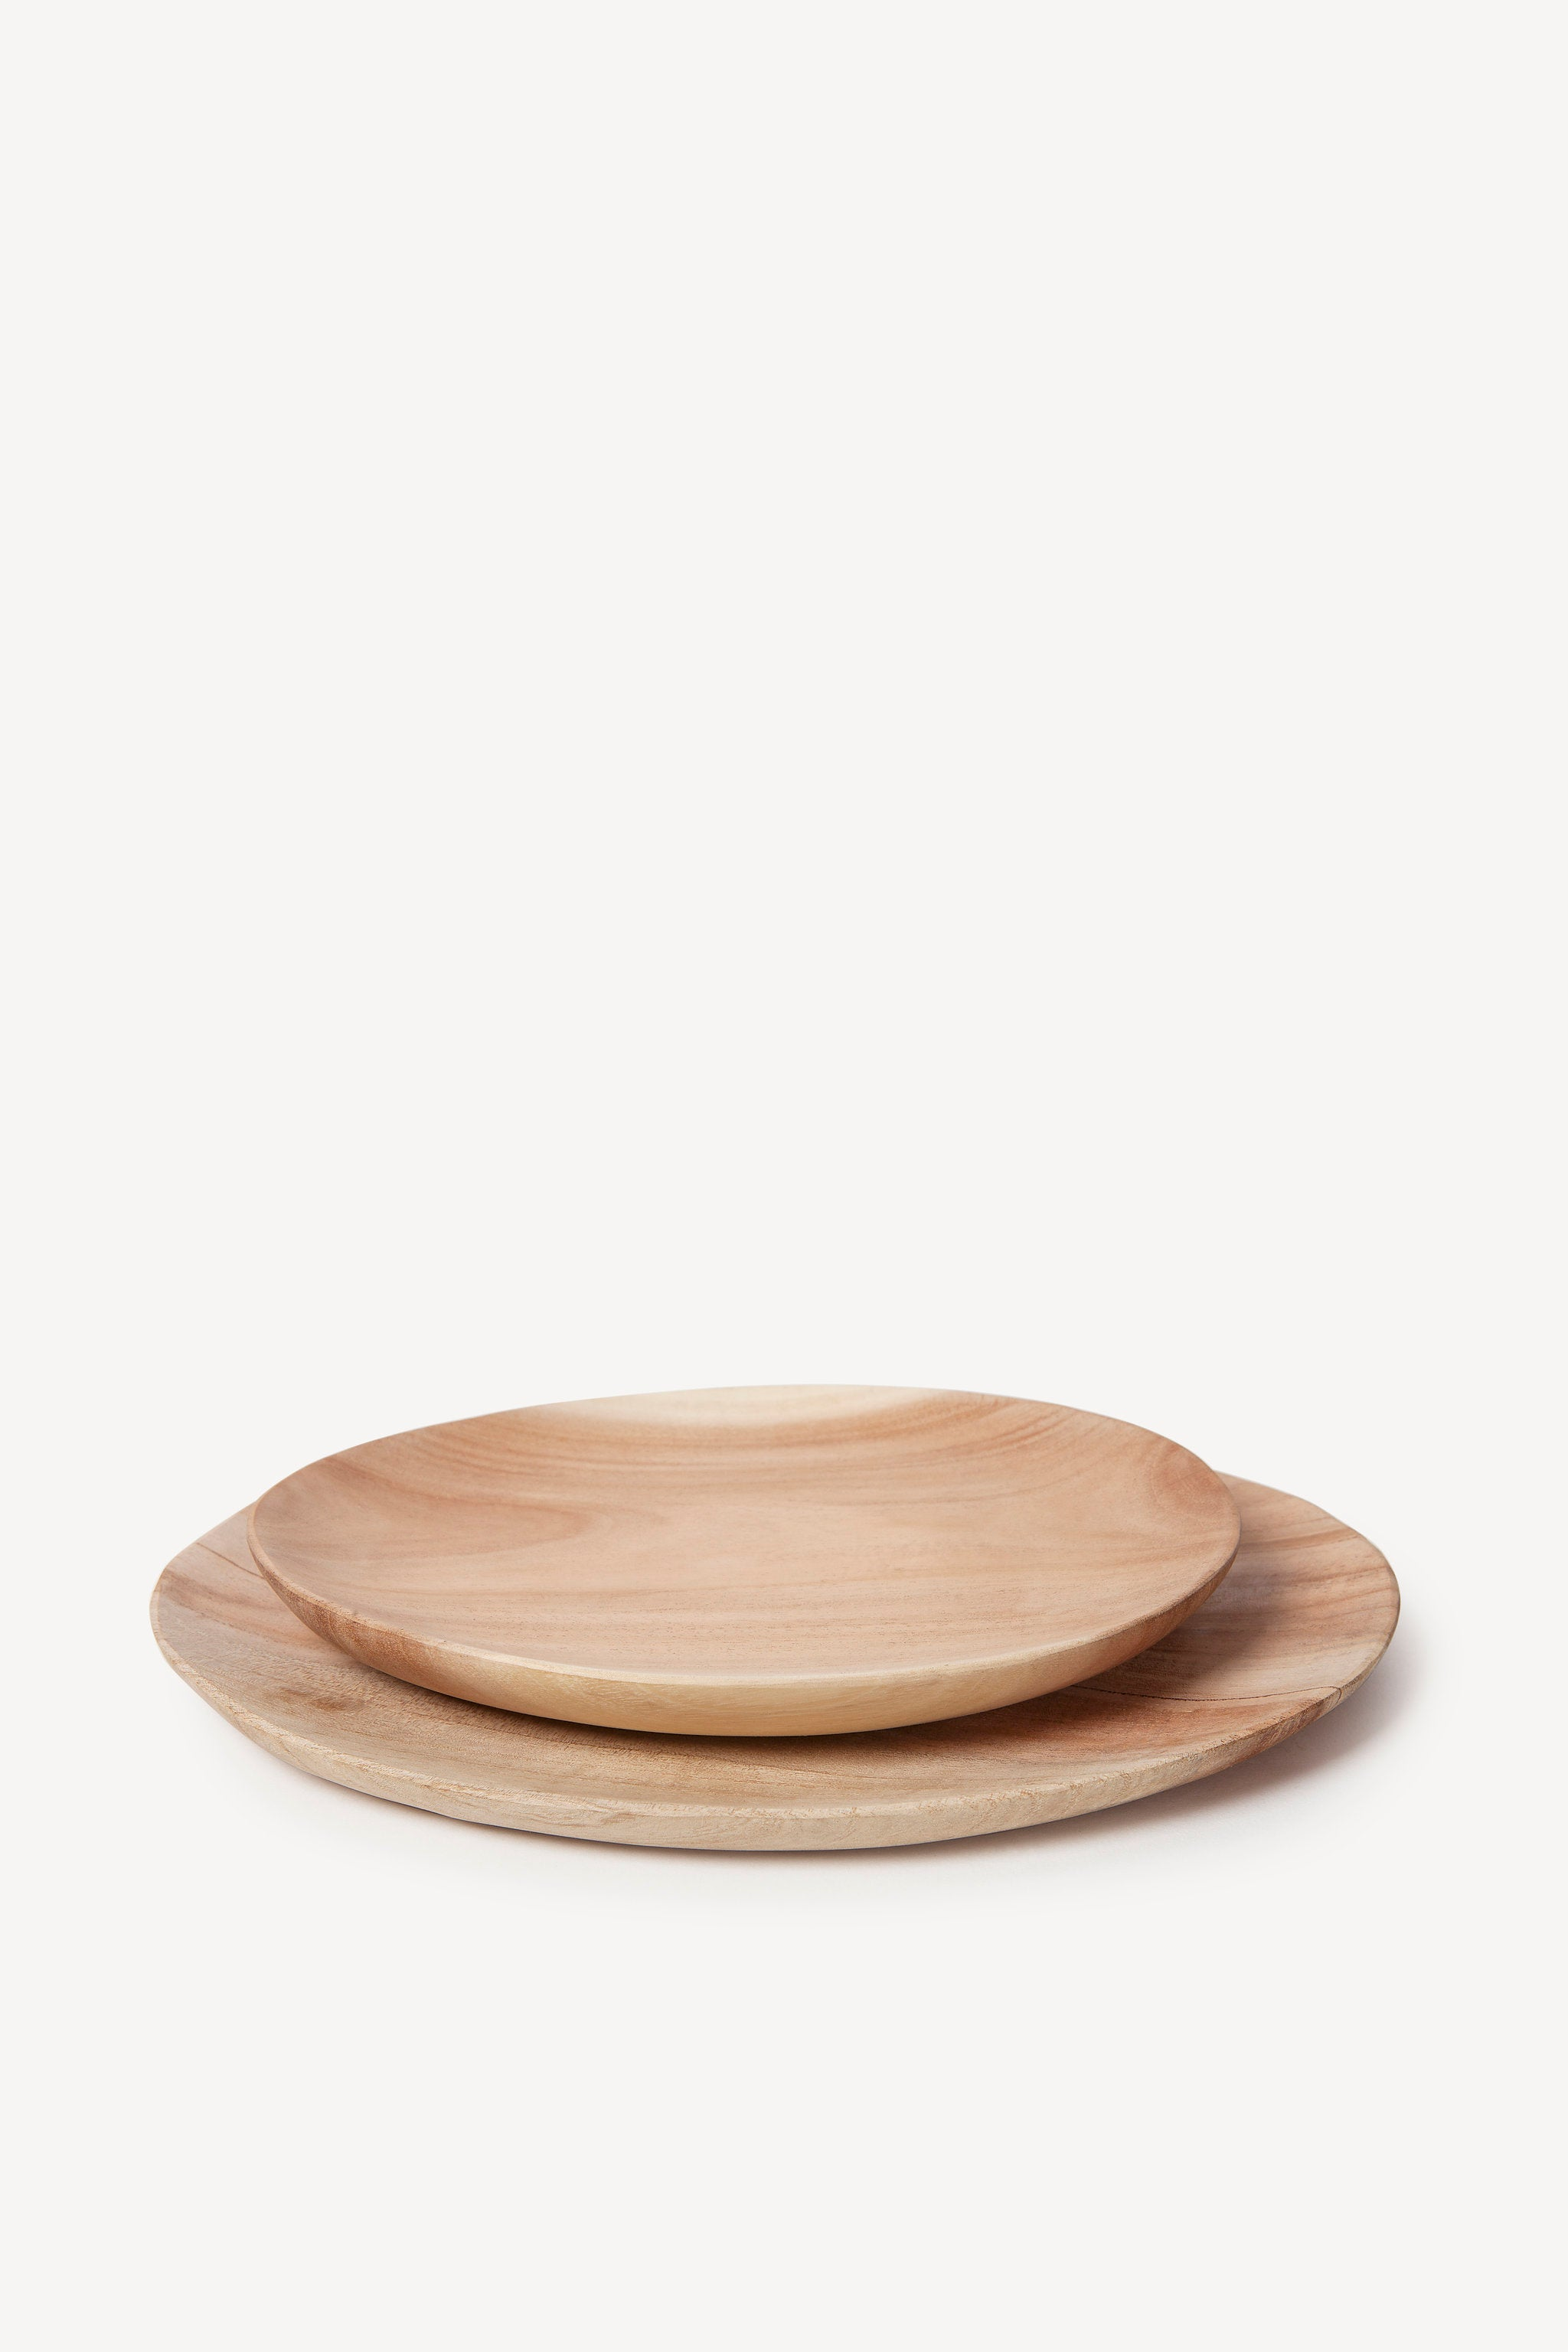 Wooden Plates & Wooden Plates - Hygge Life